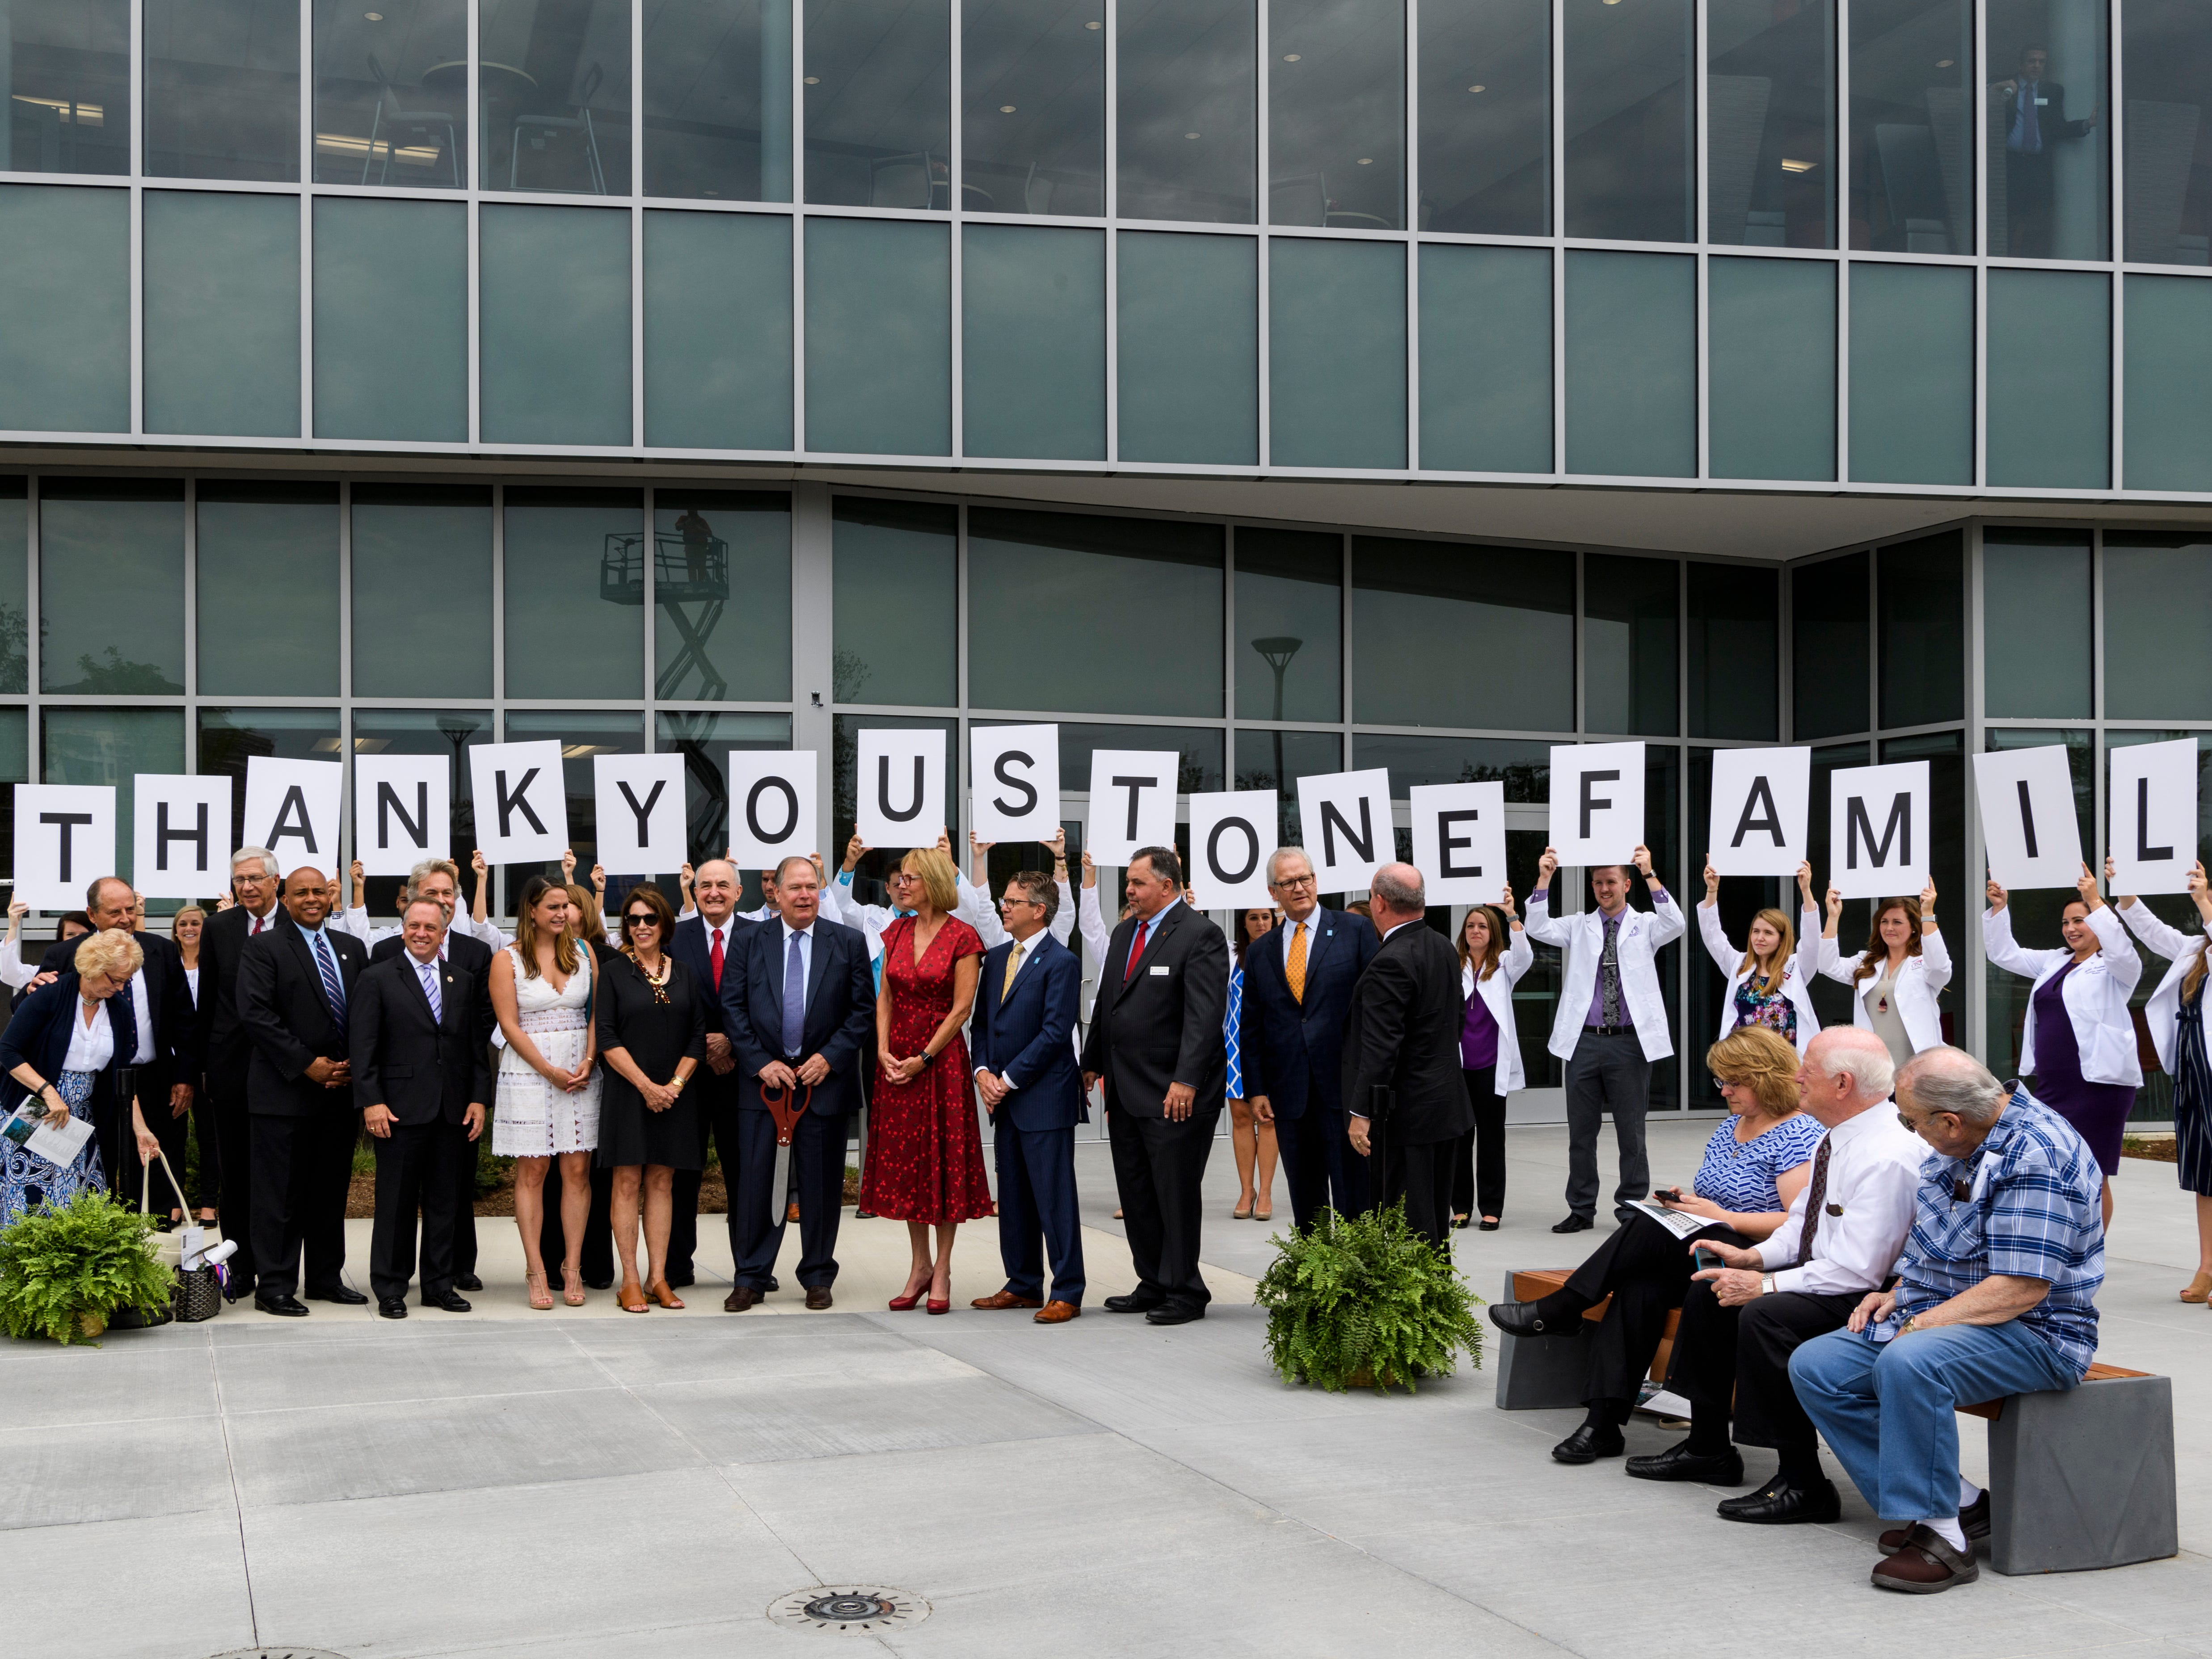 """Medical students hold up signs that say """"thank you stone family"""" during the ribbon cutting ceremony outside the new Stone Family Center for Health Sciences in Downtown Evansville, Ind., Thursday, Aug. 9, 2018. The building is named for William and Mary Stone, who made a $15 million gift to support the health sciences center."""